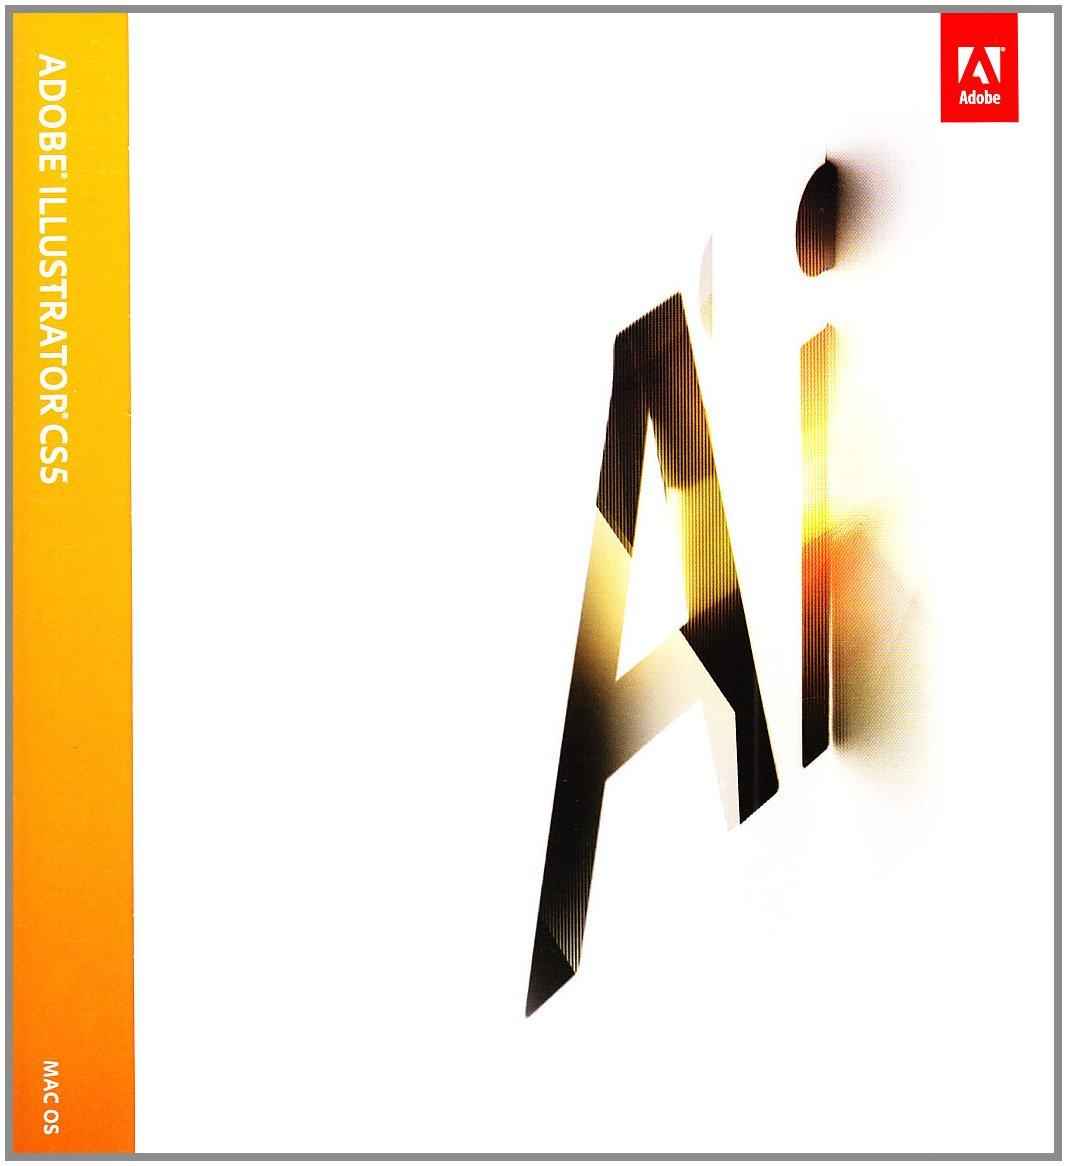 Adobe Illustrator CS5 15 per Mac